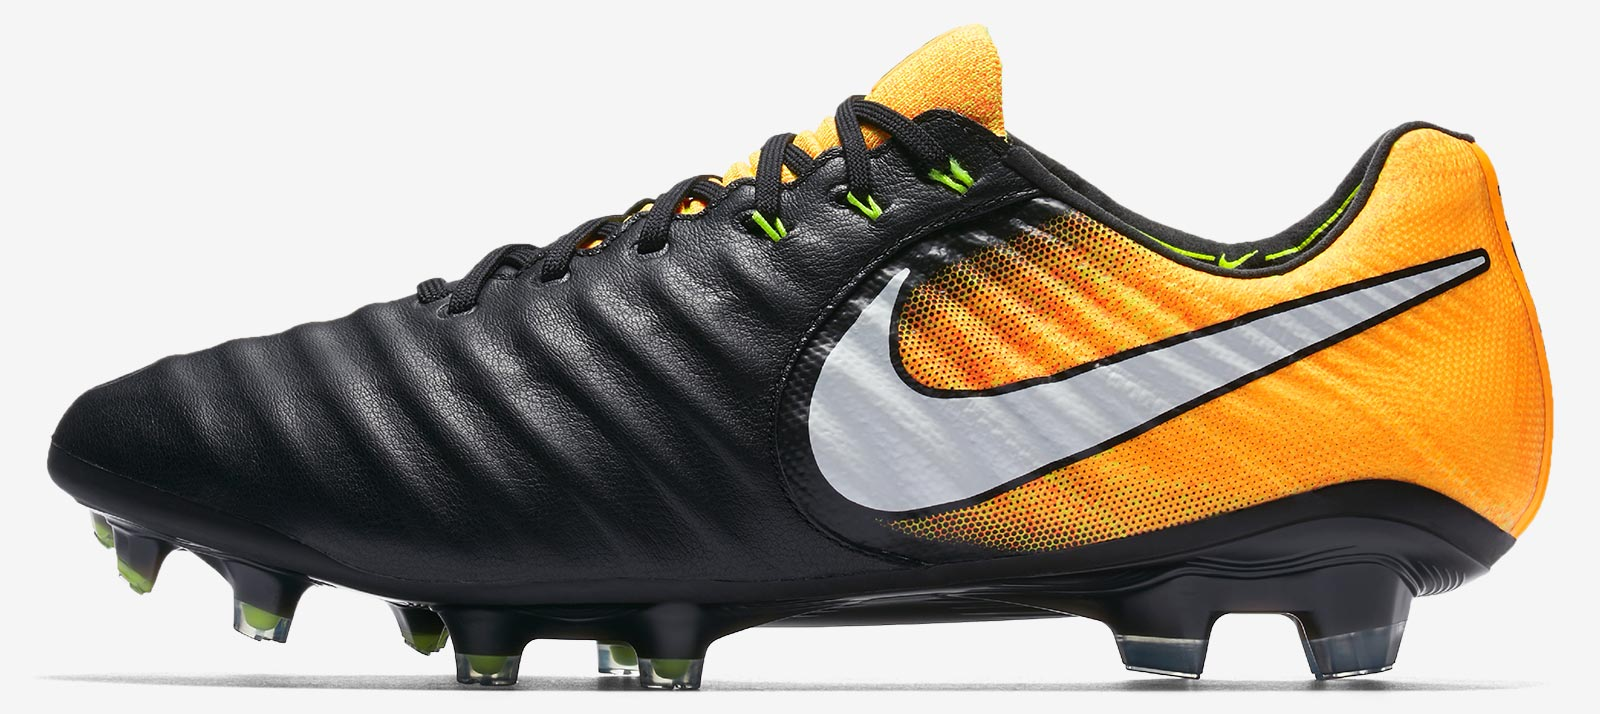 nike tiempo legend 7 football boots. Black Bedroom Furniture Sets. Home Design Ideas